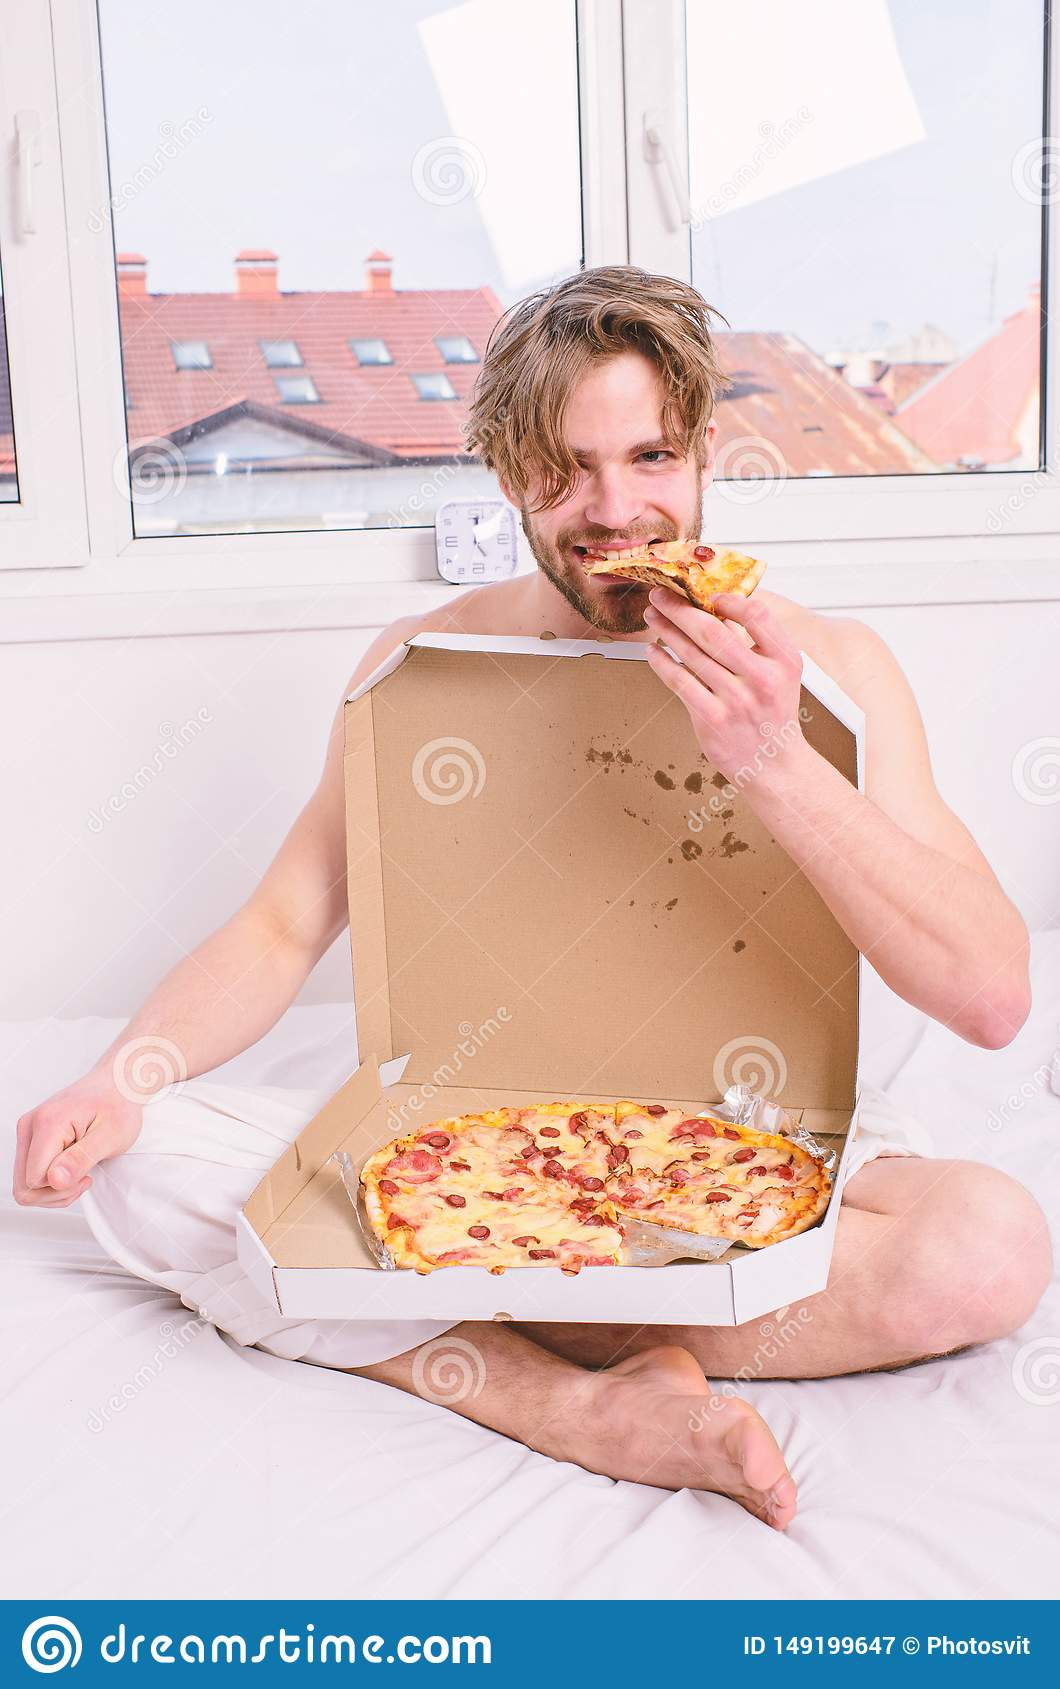 Man bearded handsome eat pizza. Man eat pizza breakfast. Guy naked covered pizza box sit bed bedroom offer you join him